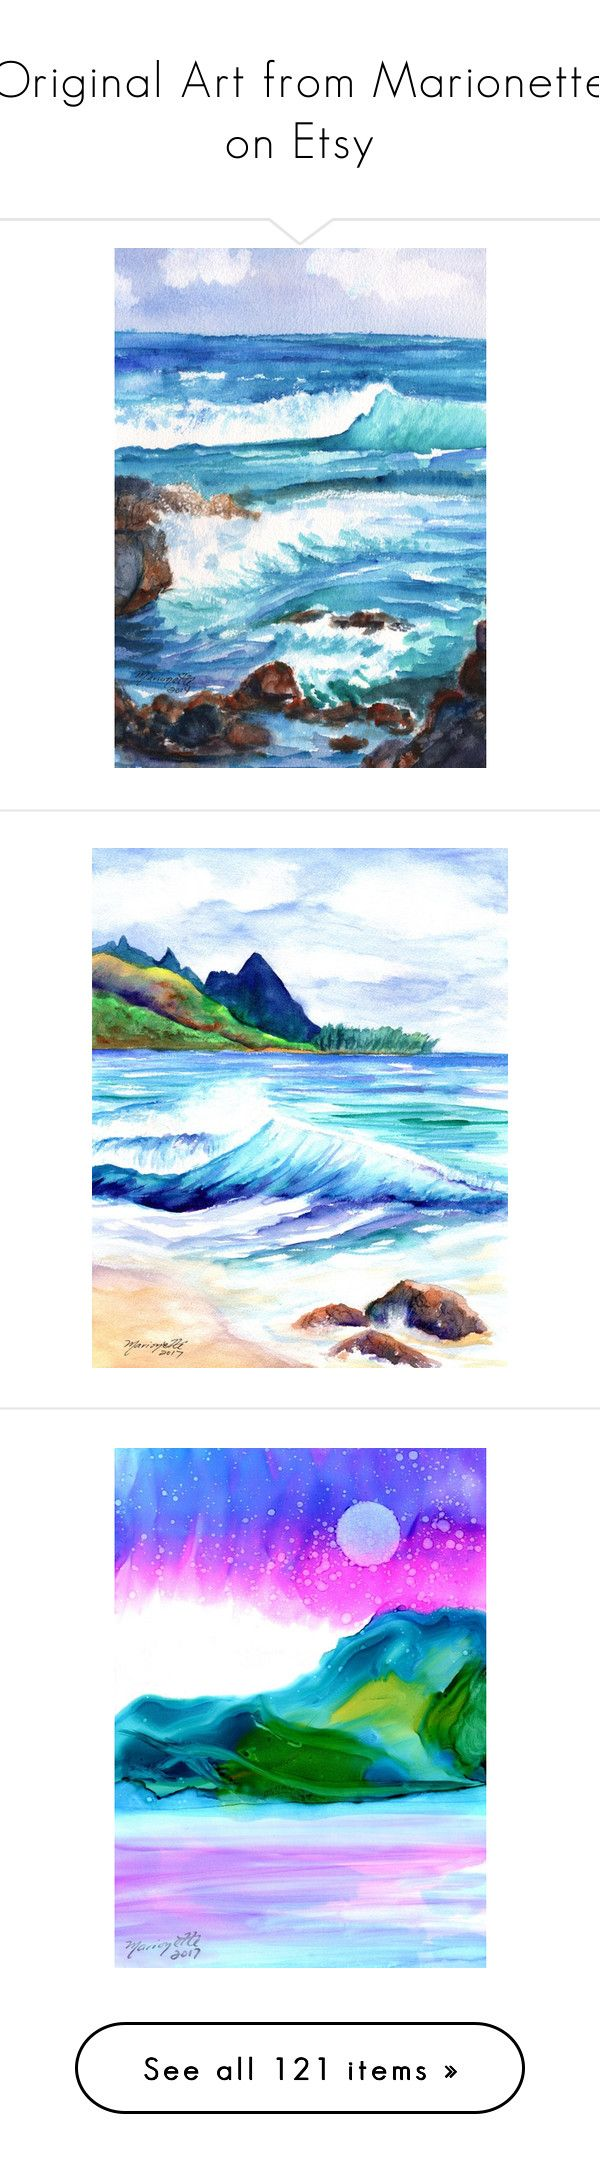 """Original Art from Marionette on Etsy"" by artbymarionette ❤ liked on Polyvore featuring home, home decor, wall art, wave, teal home accessories, teal wall art, sea painting, sea wall art, tropical paintings and mountain wall art"